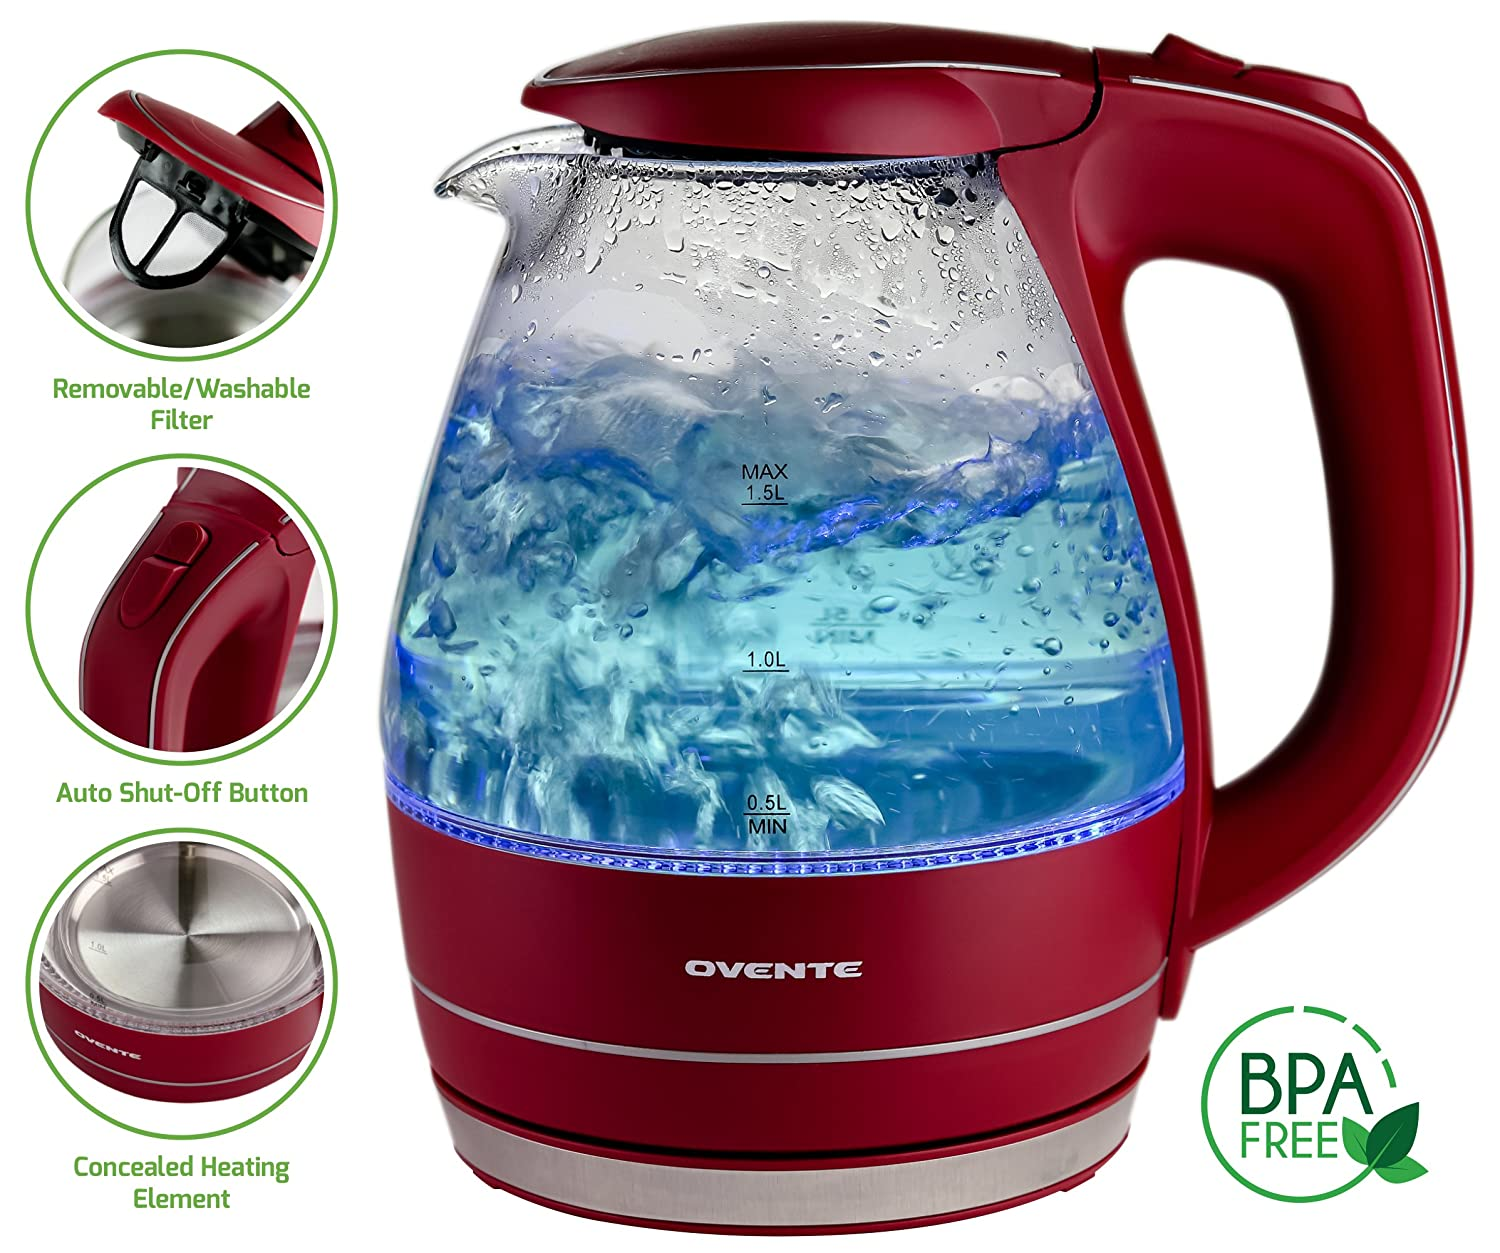 Ovente 1.5L BPA-Free Glass Electric Kettle, Fast Heating with Auto Shut-Off and Boil-Dry Protection, Cordless, LED Light Indicator, Black (KG83B) DAFI by Ruby Compass